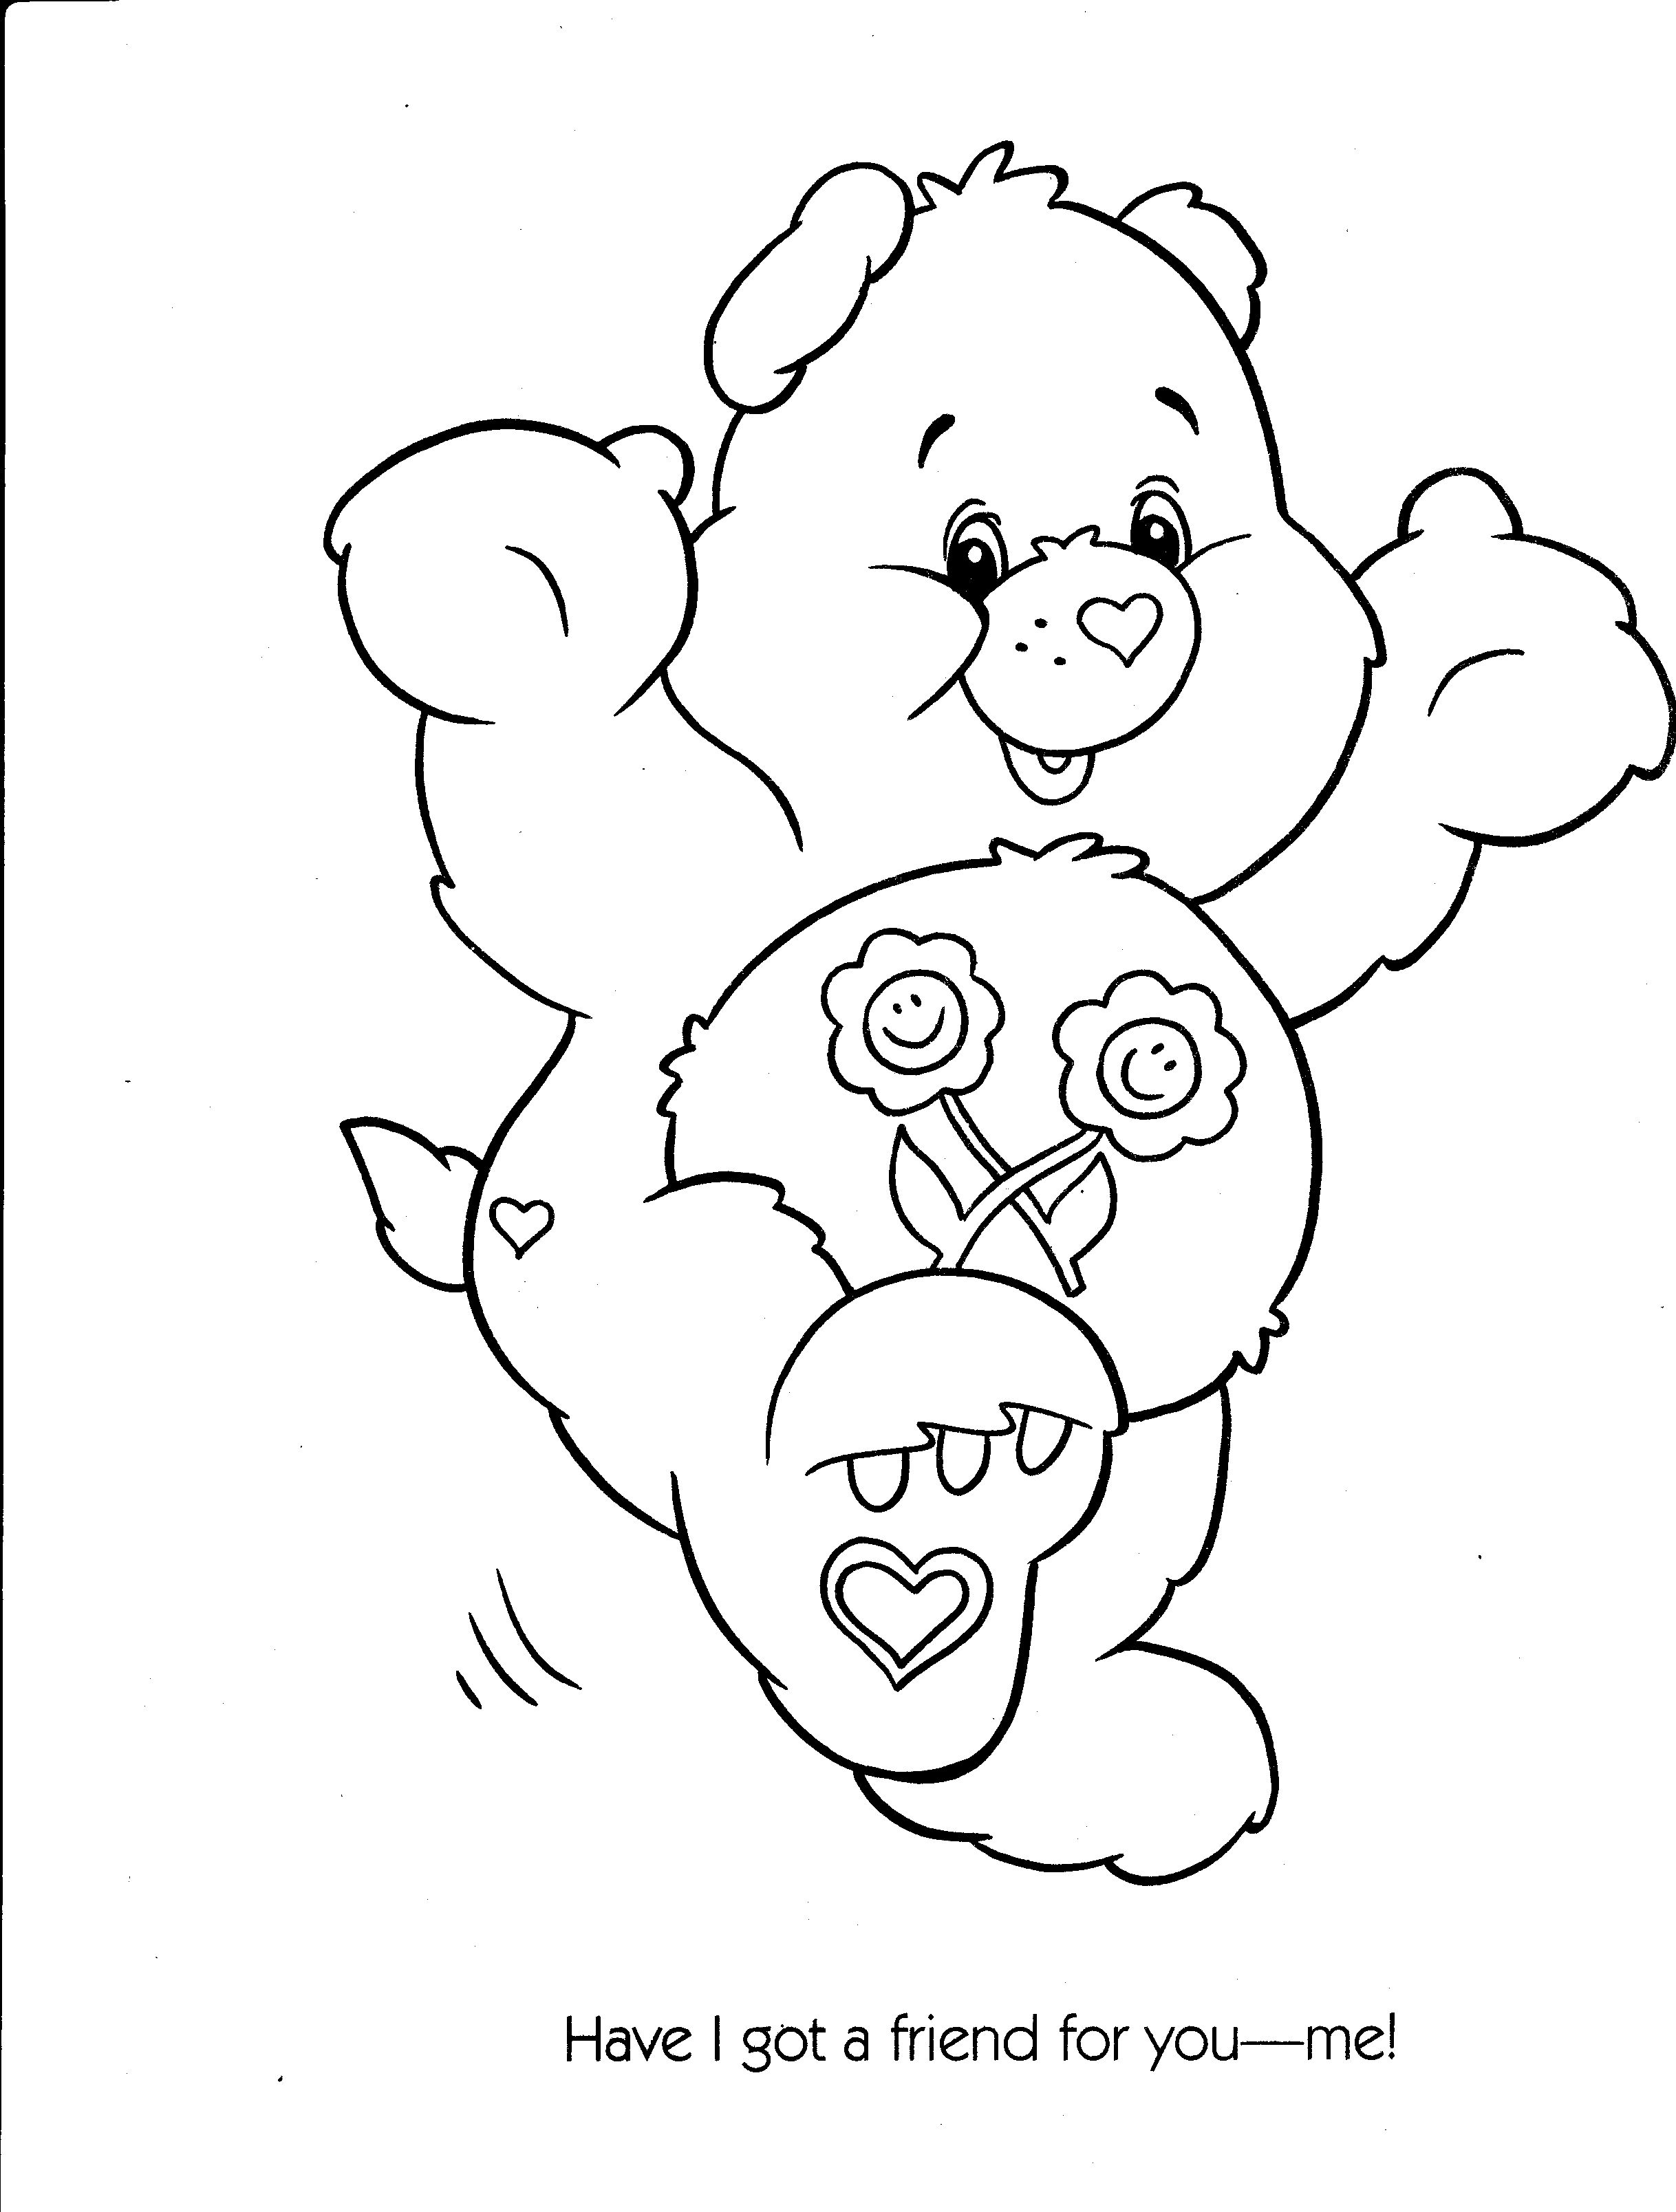 Care Bear Coloring Page Google Search Bear Coloring Pages Coloring Pages Coloring Books